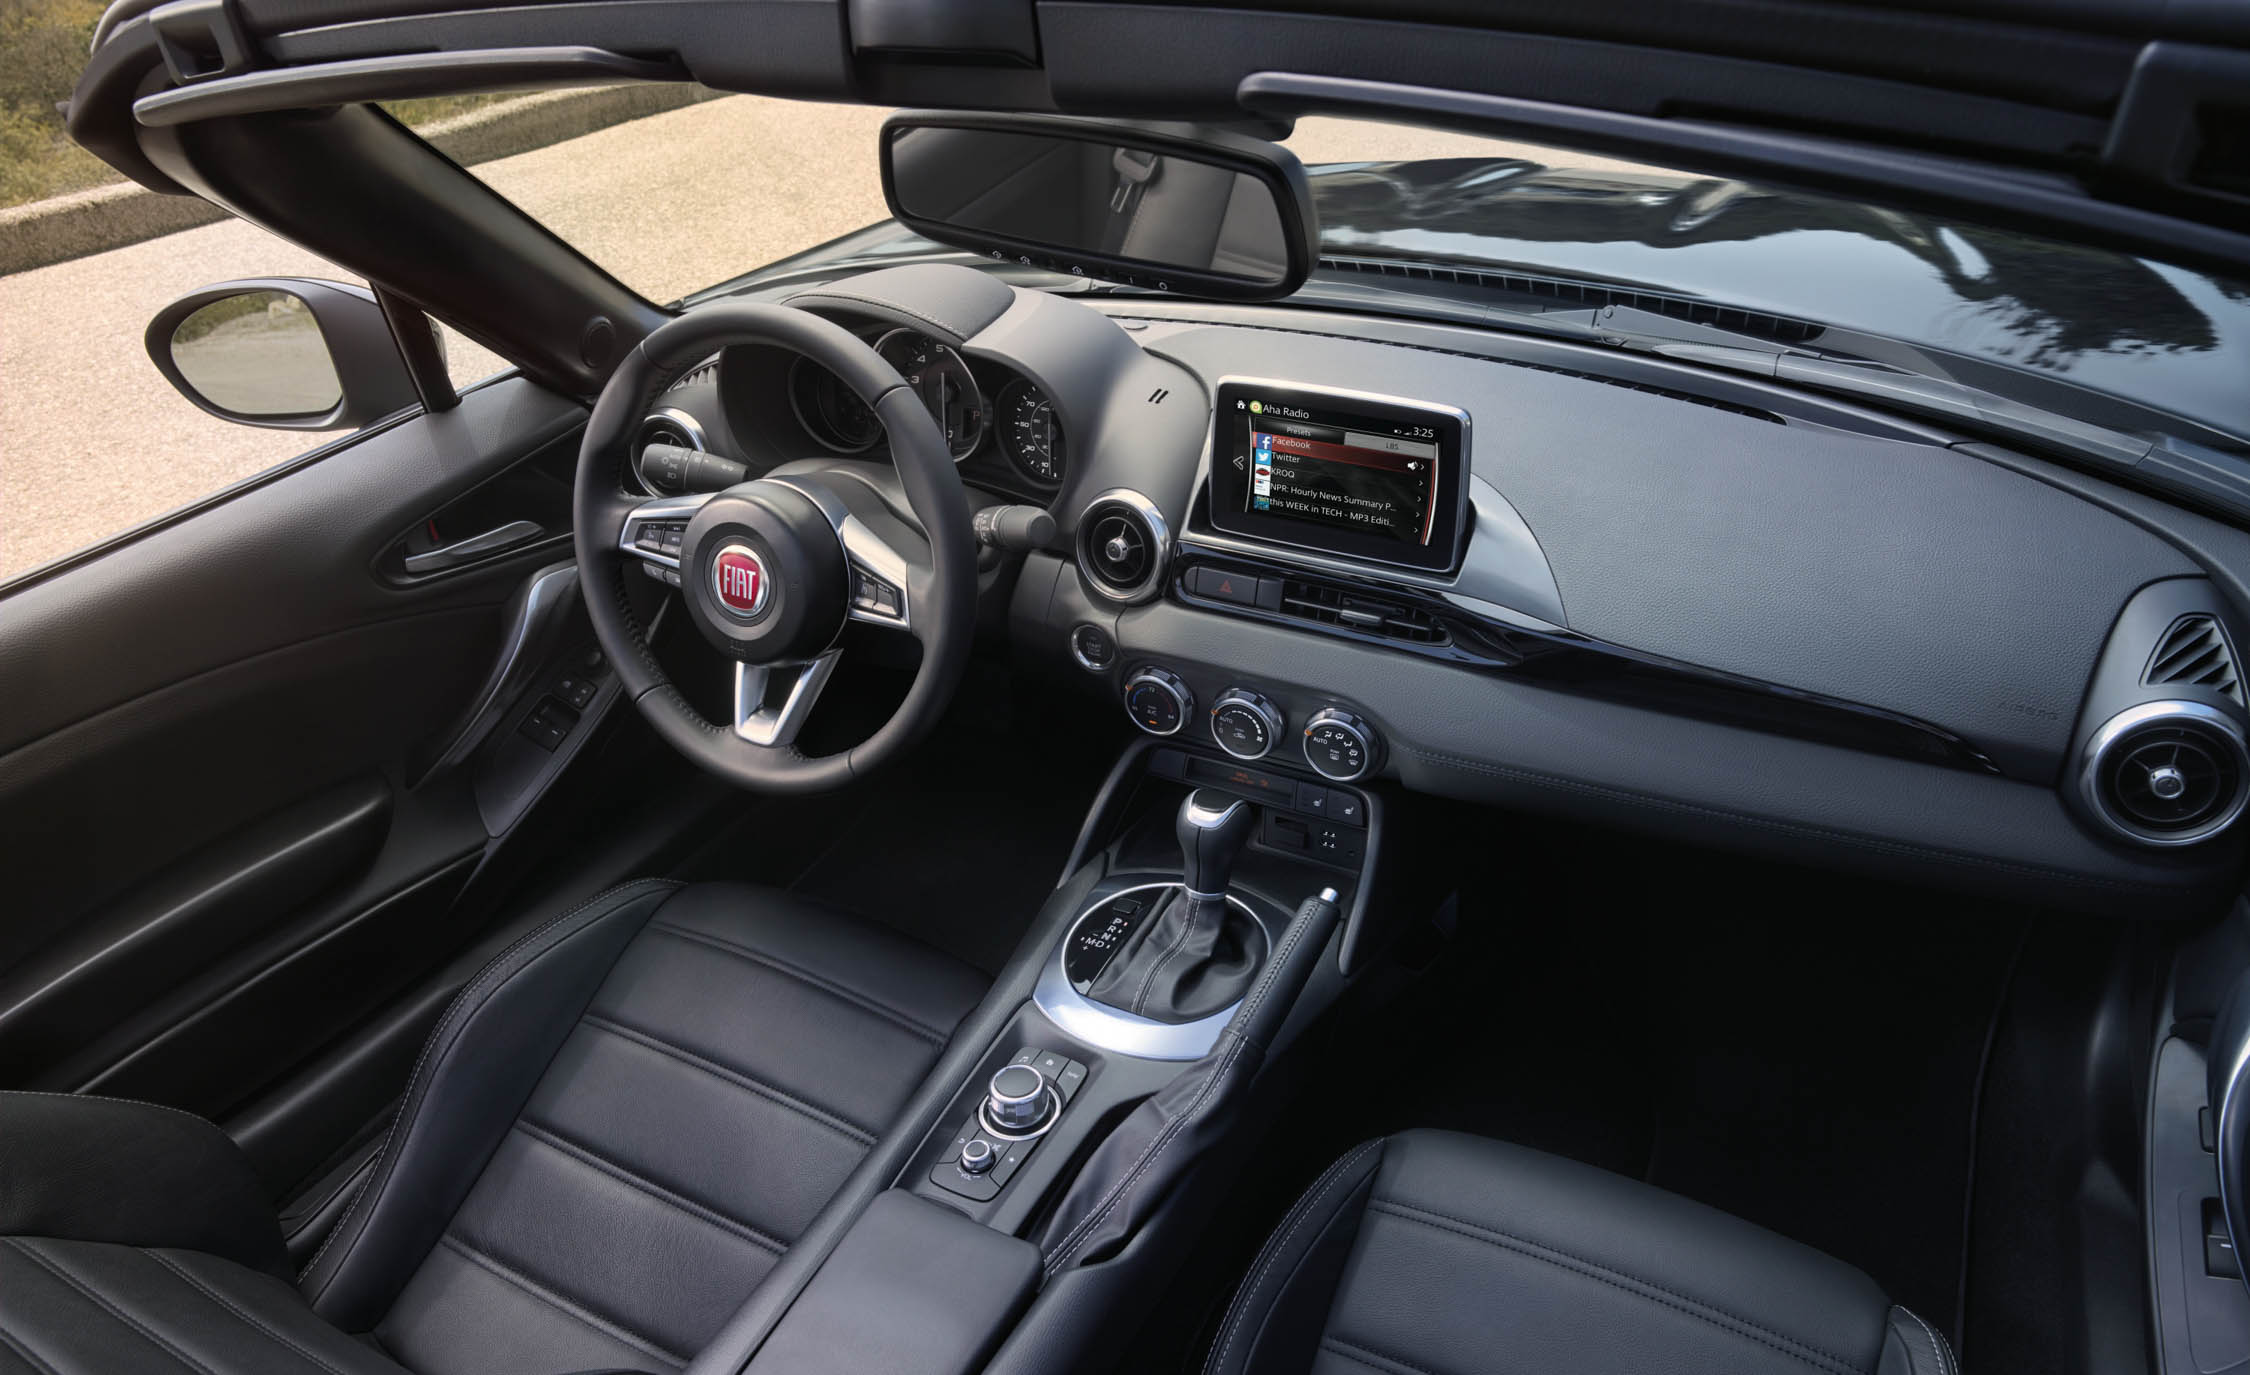 2017 Fiat 124 Spider Dashboard Interior